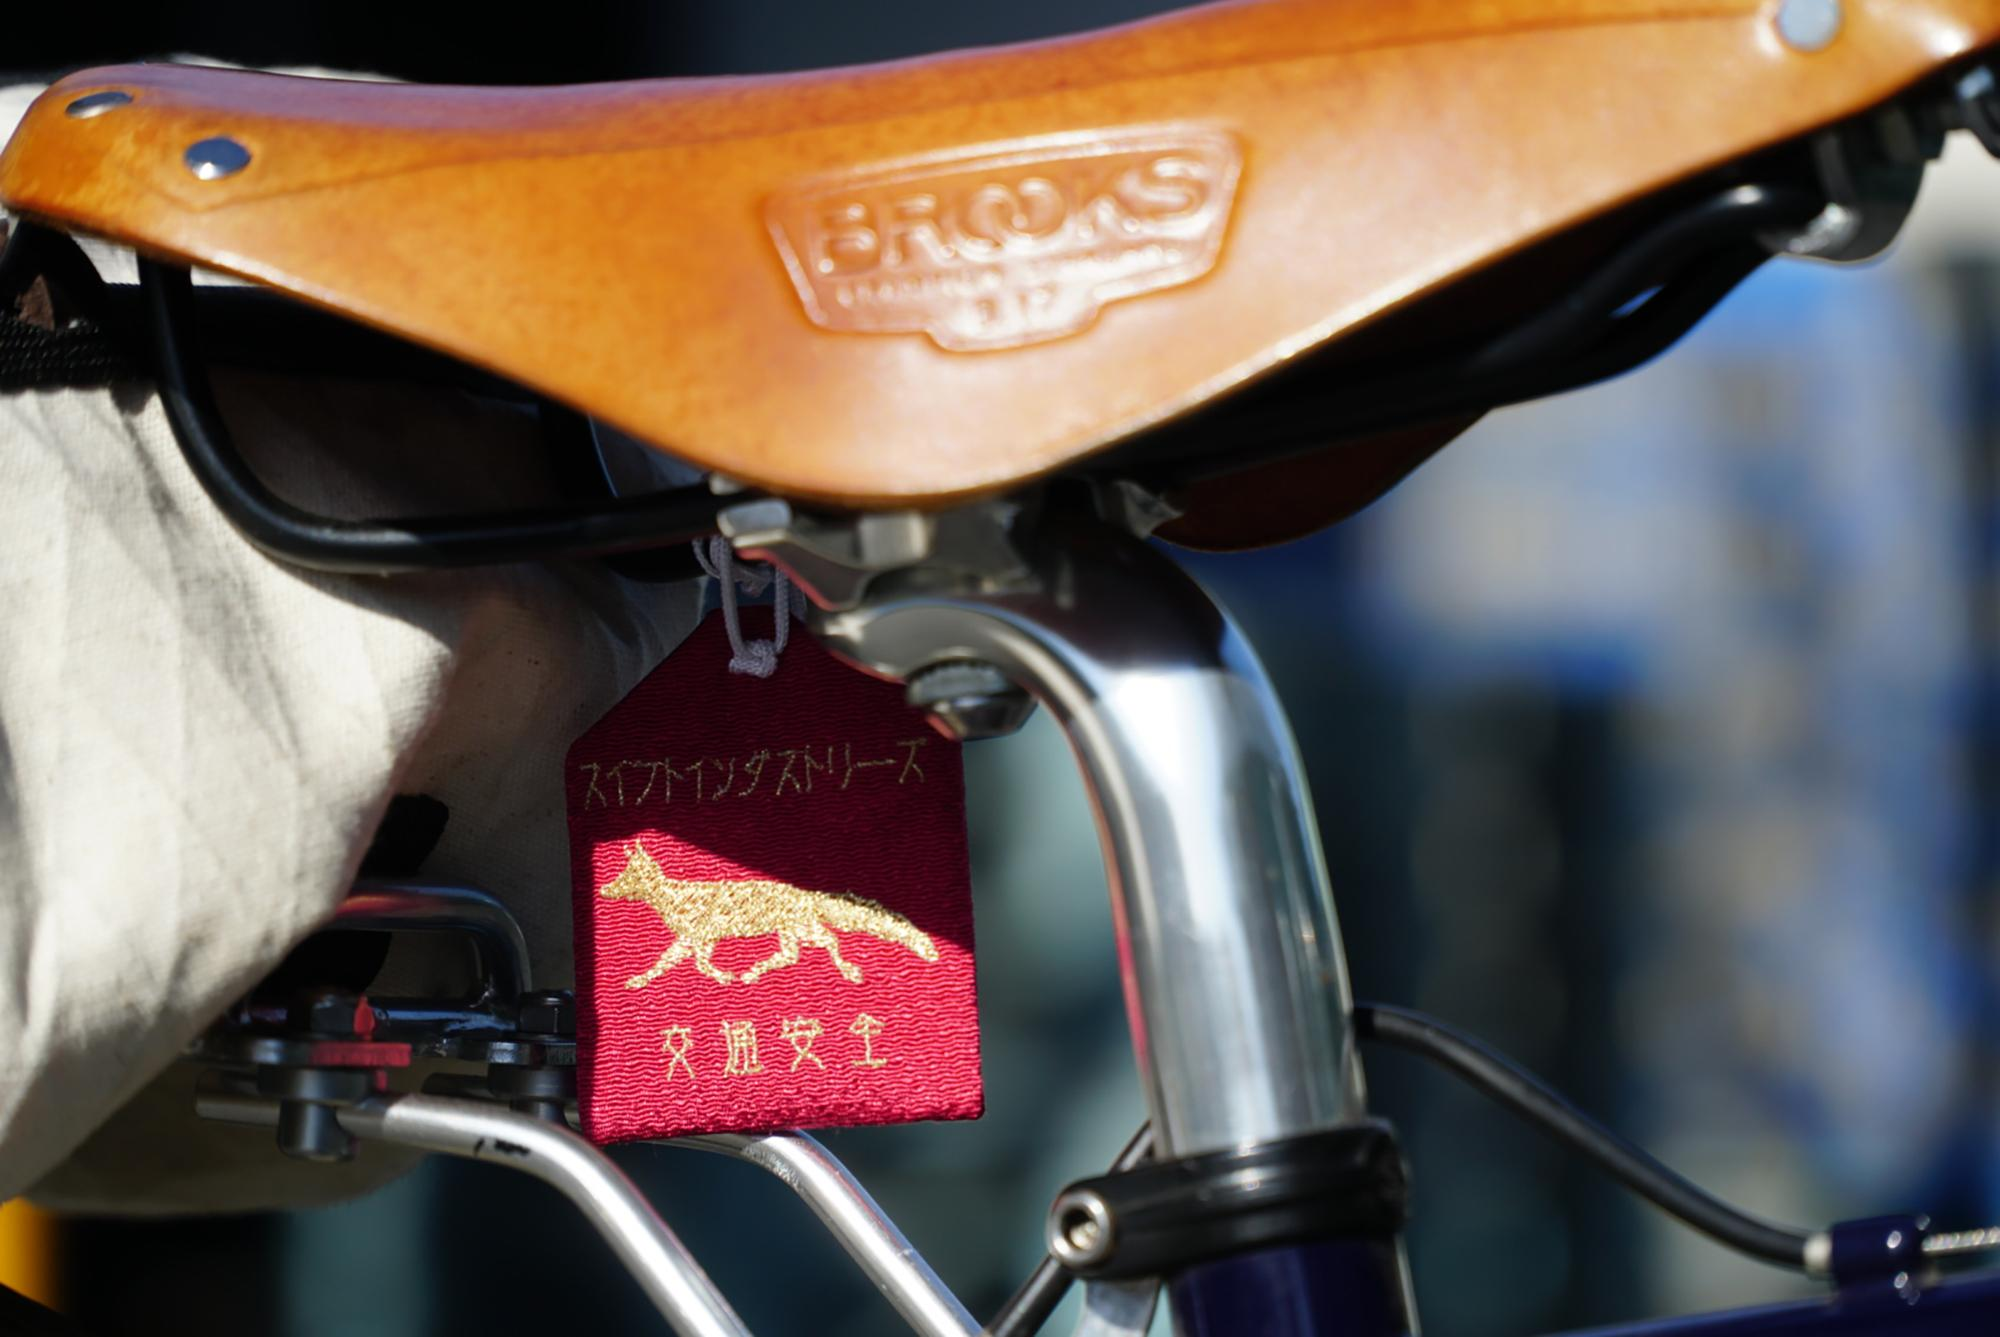 Crust Bikes and MKS: the Gordito Pedal